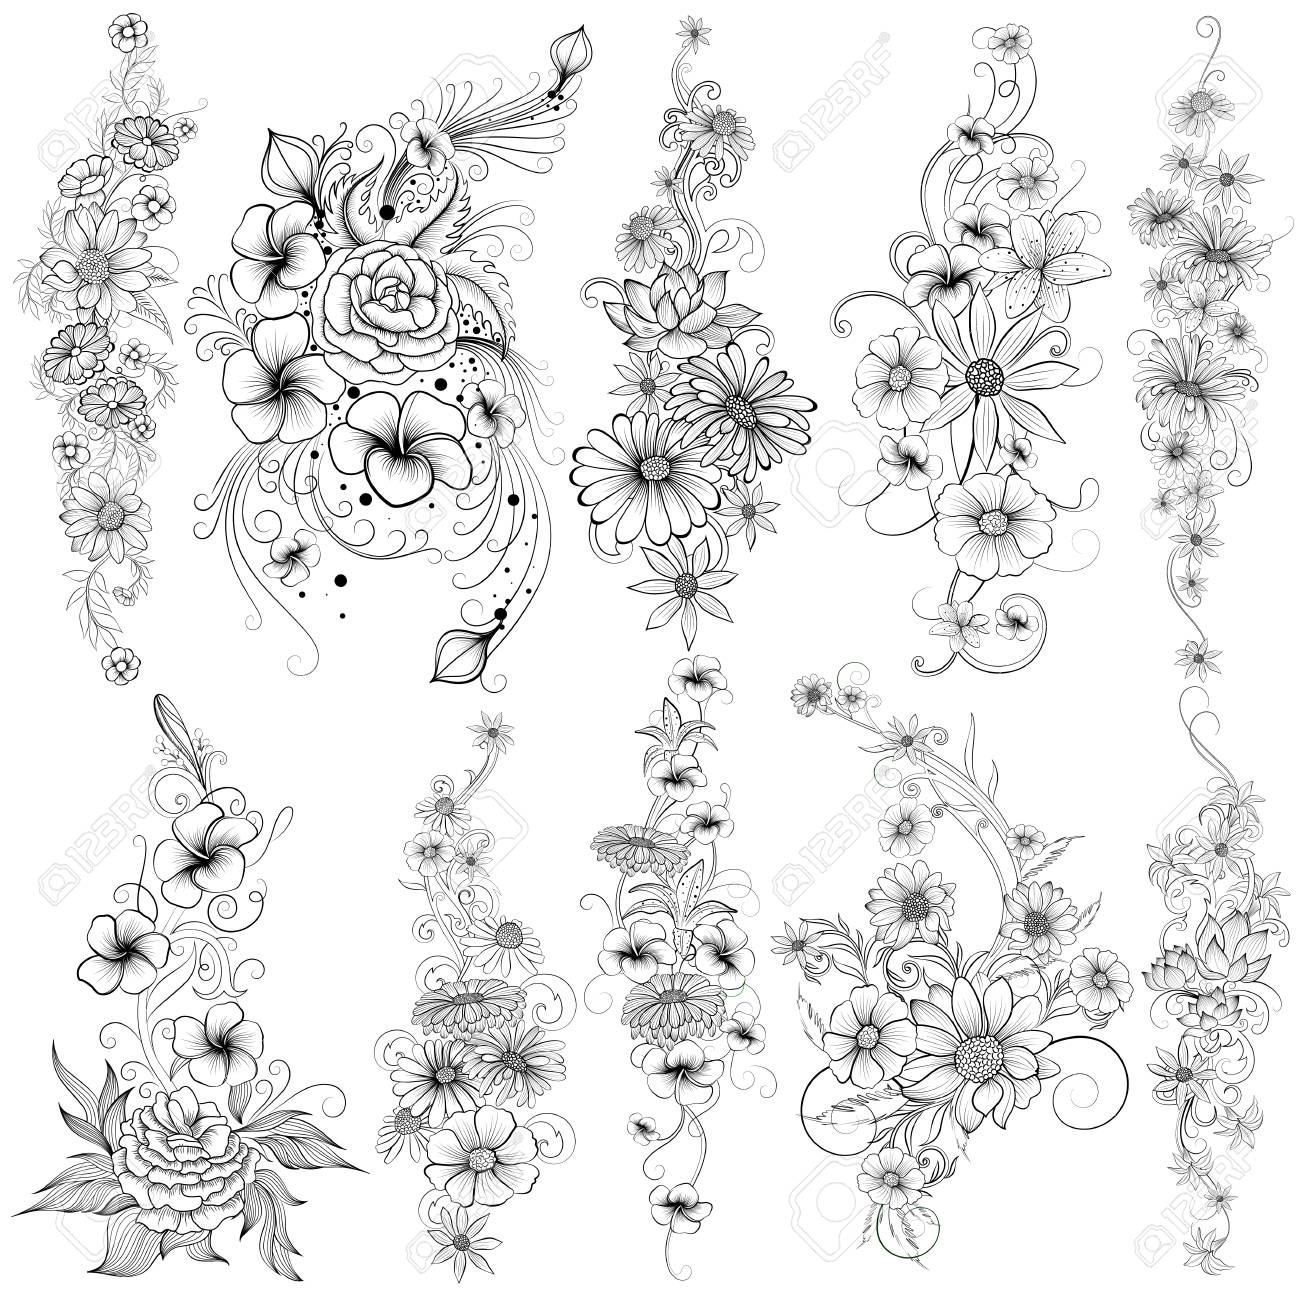 Tattoo art design of floral flower collection - 92579757